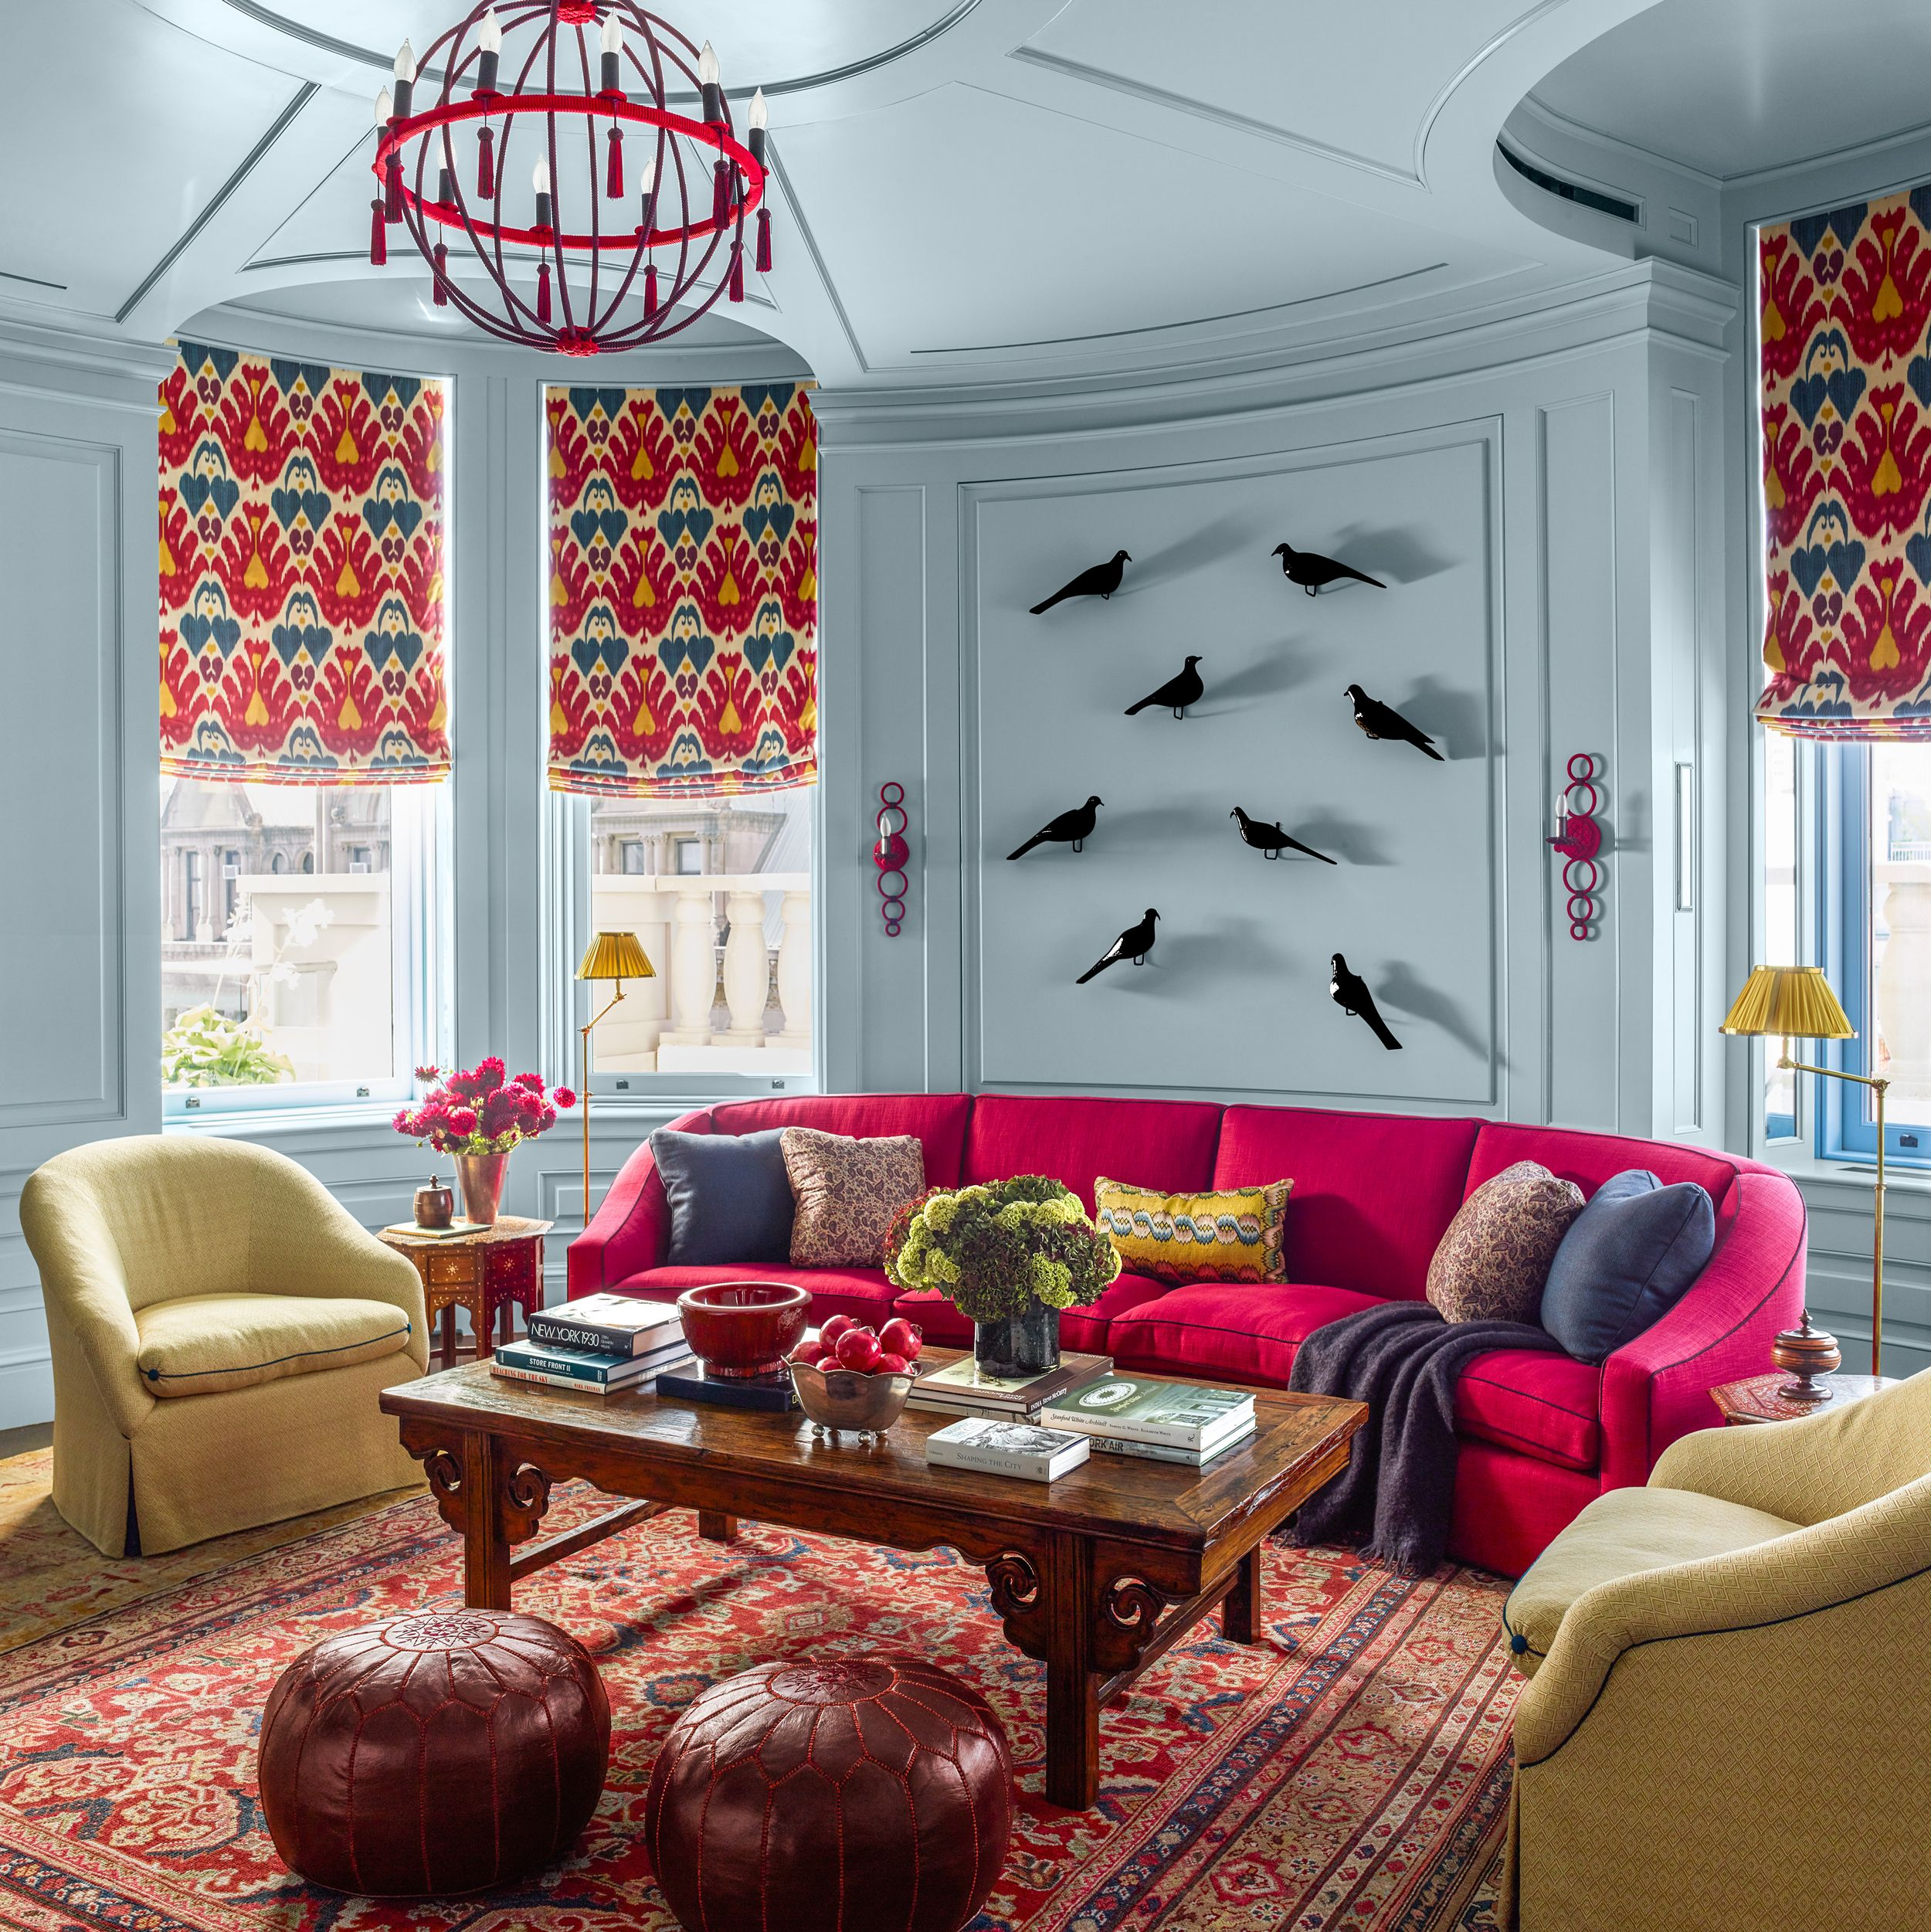 51 Living Room Rug Ideas Stylish Area, Teal And Red Living Room